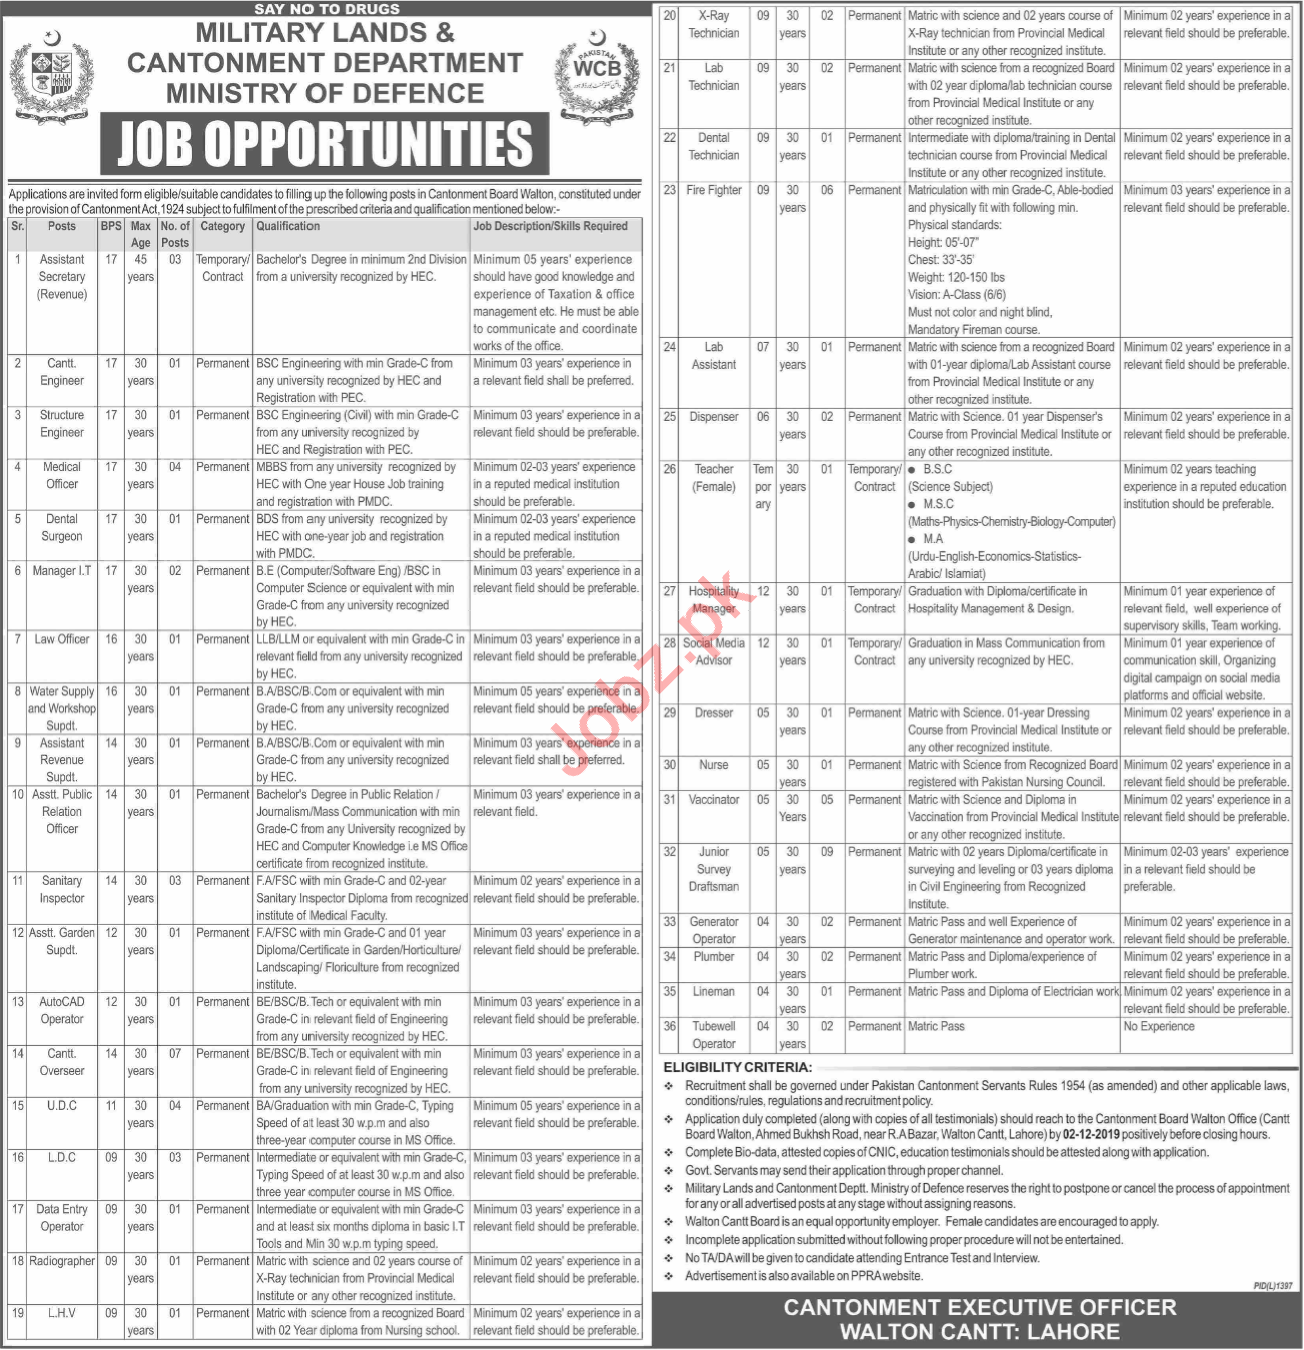 Military Lands & Cantt Department Ministry of Defence Jobs